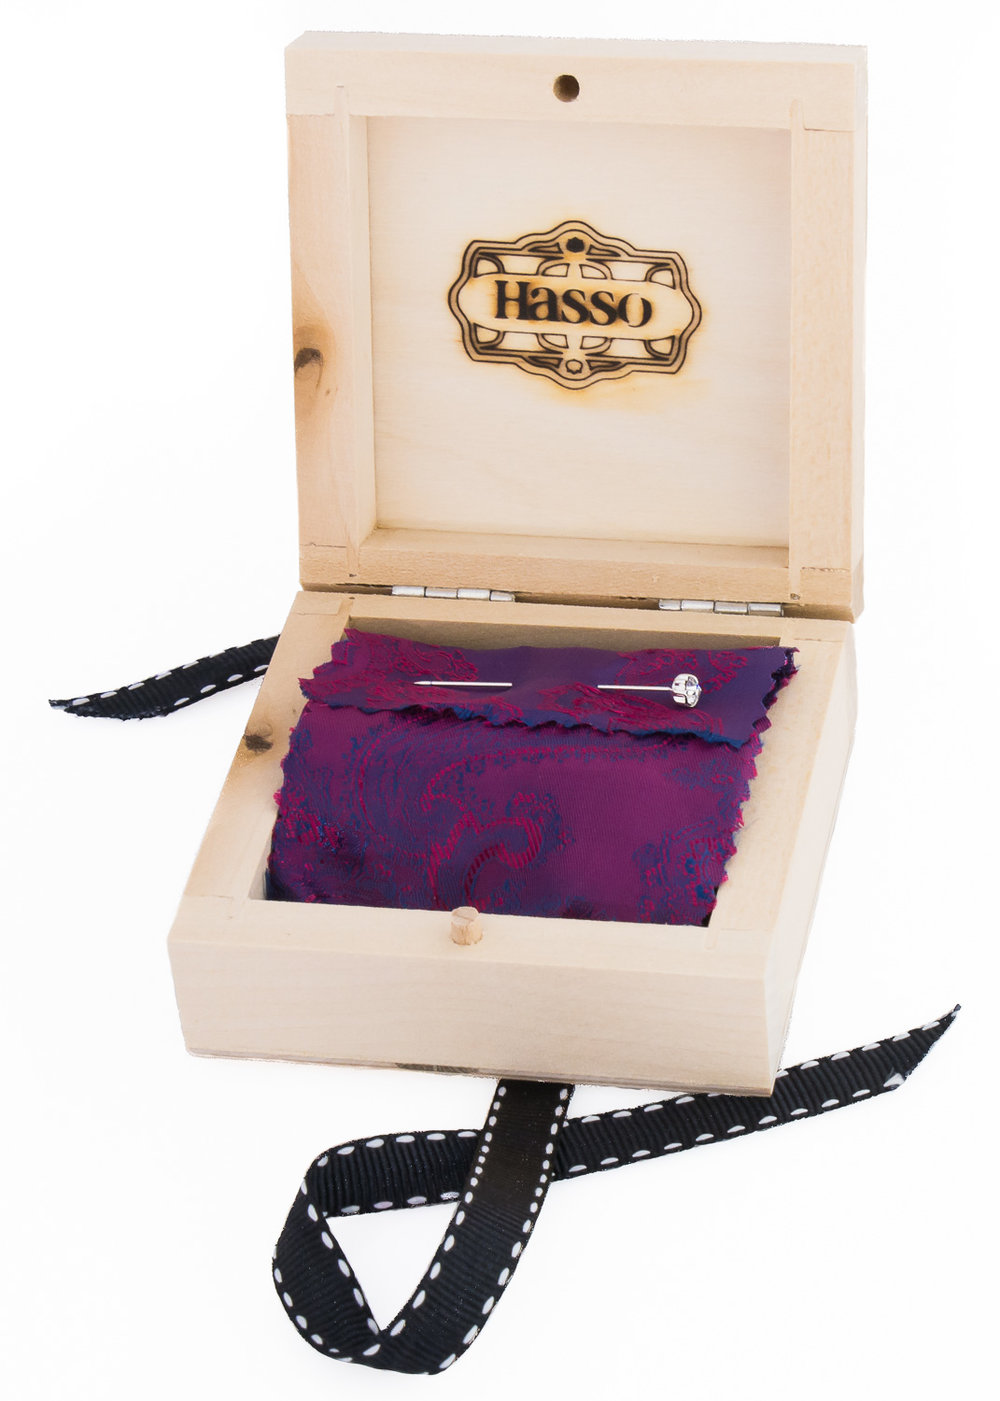 hasso_cufflink_box_open